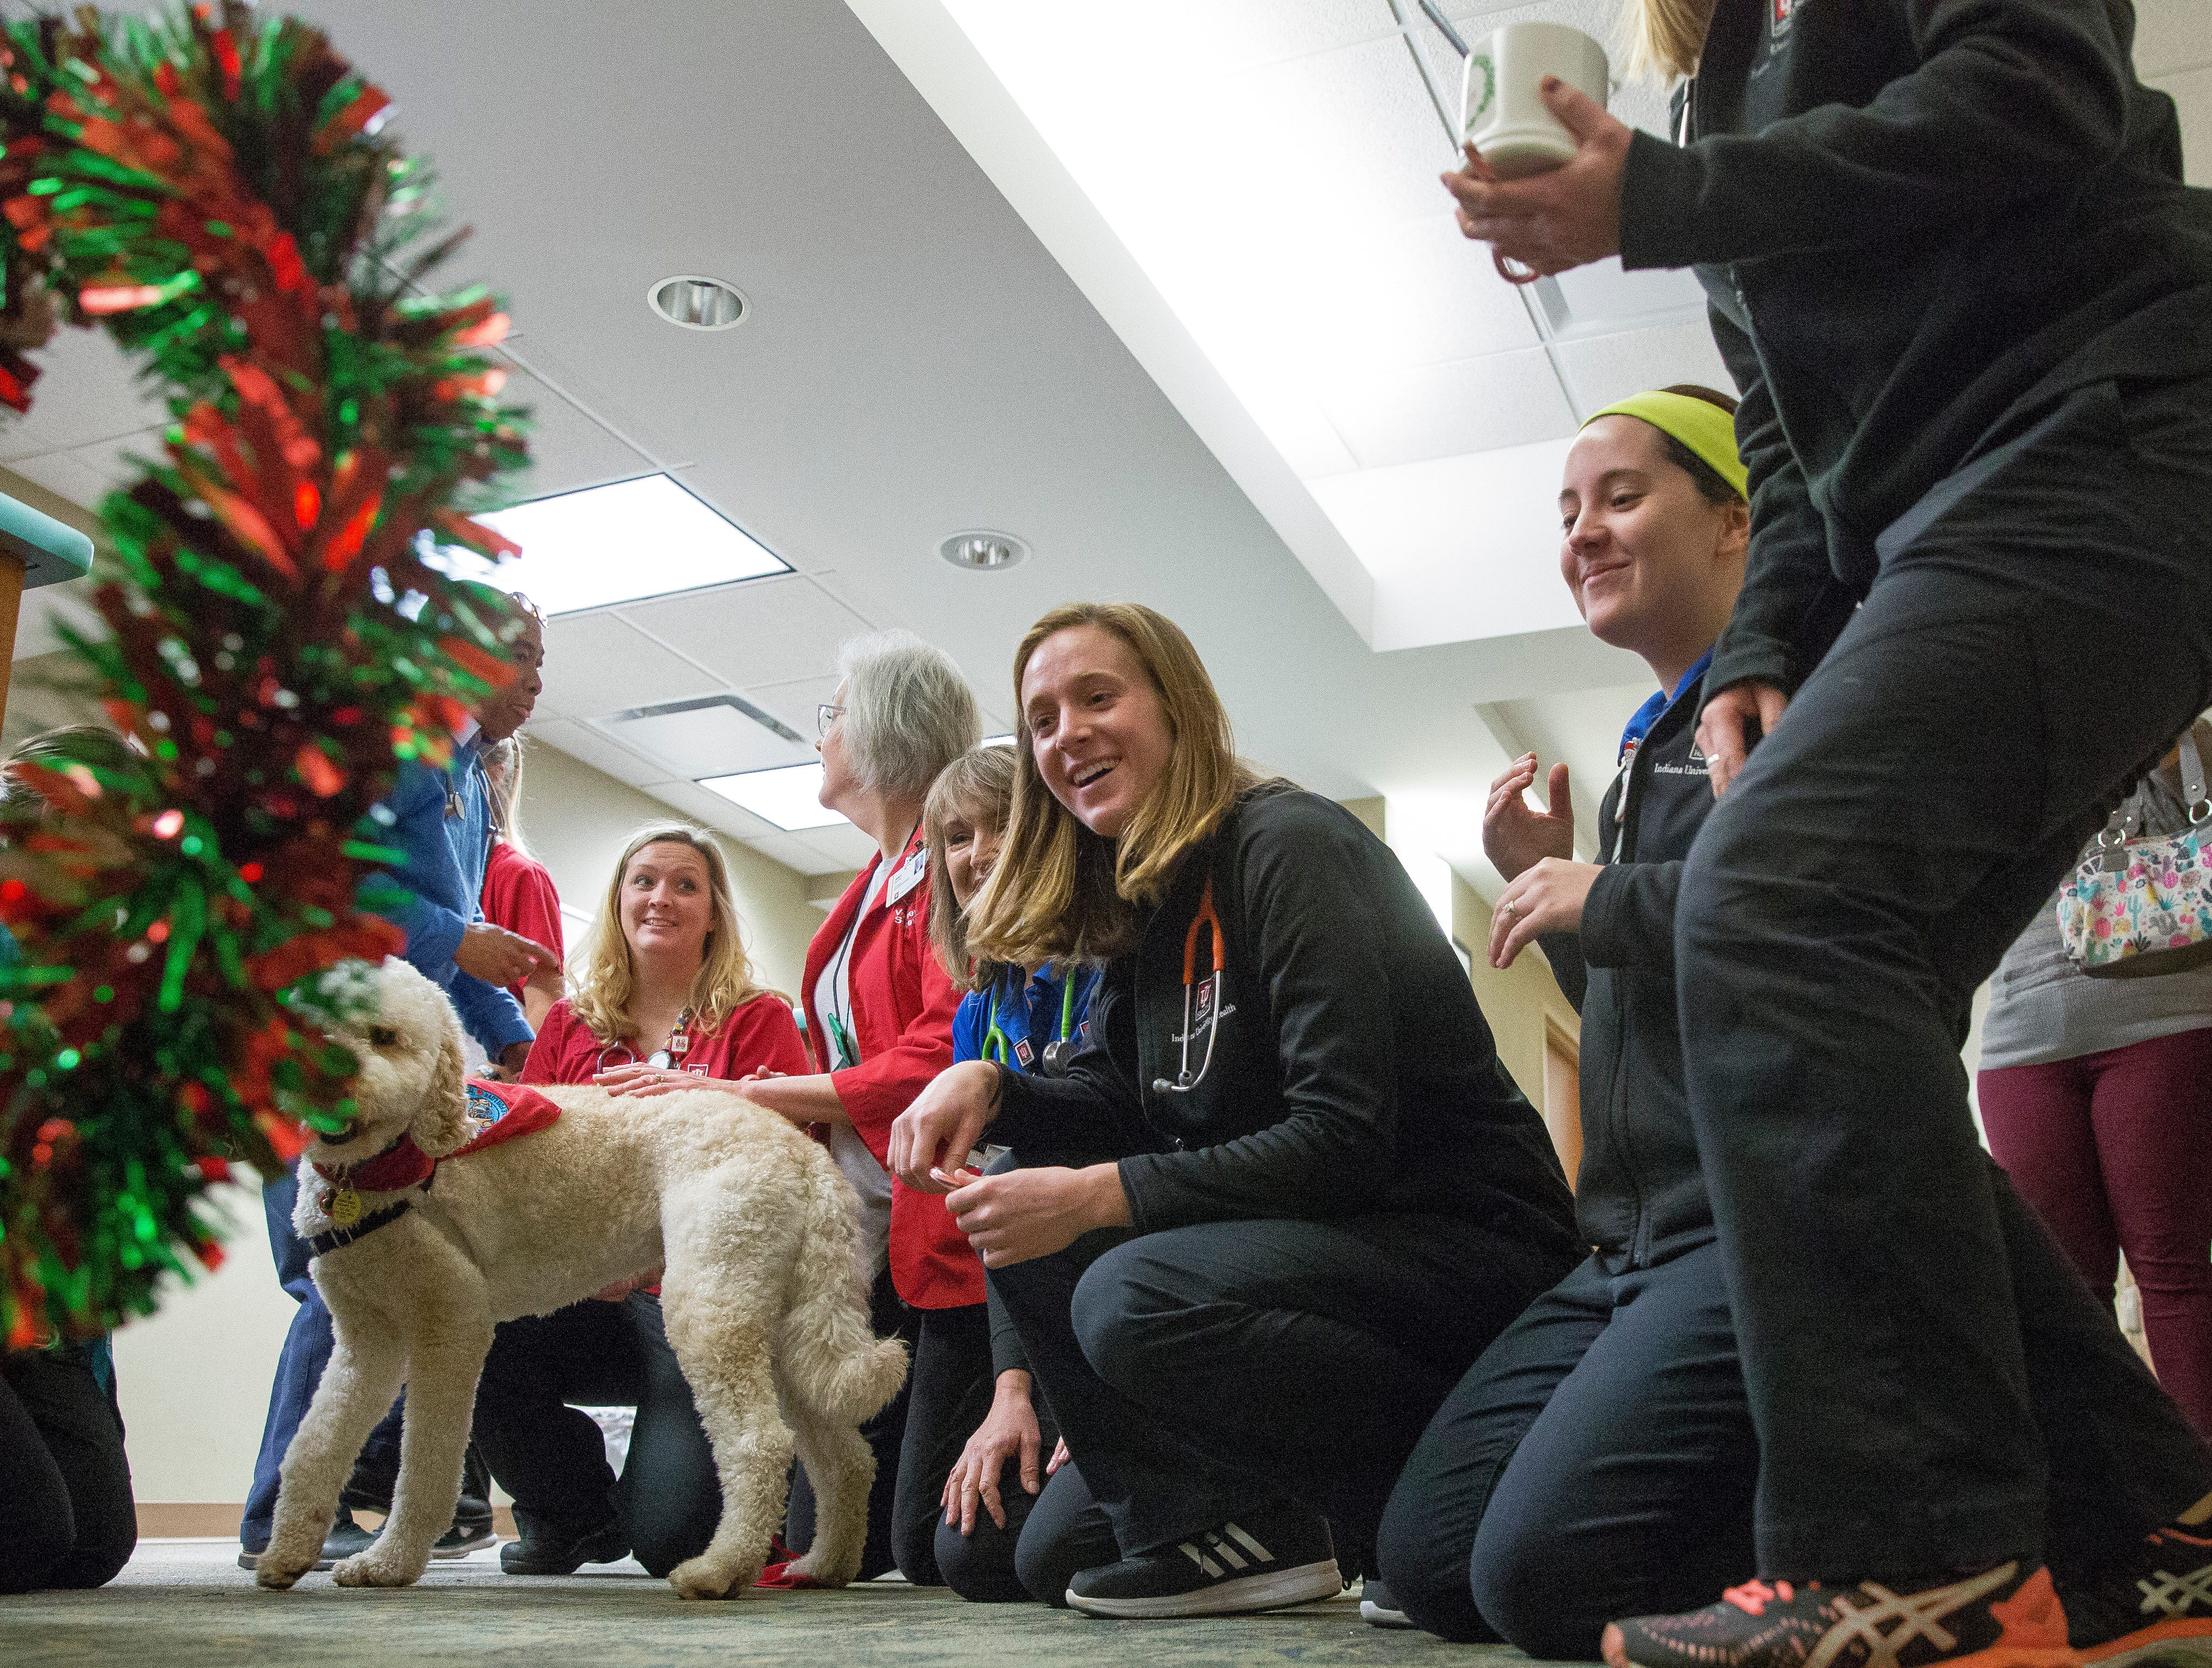 Teddy, a comfort canine with IU Health Ball Memorial Hospital, works with his owner Janet Roepke to cheer up patients.